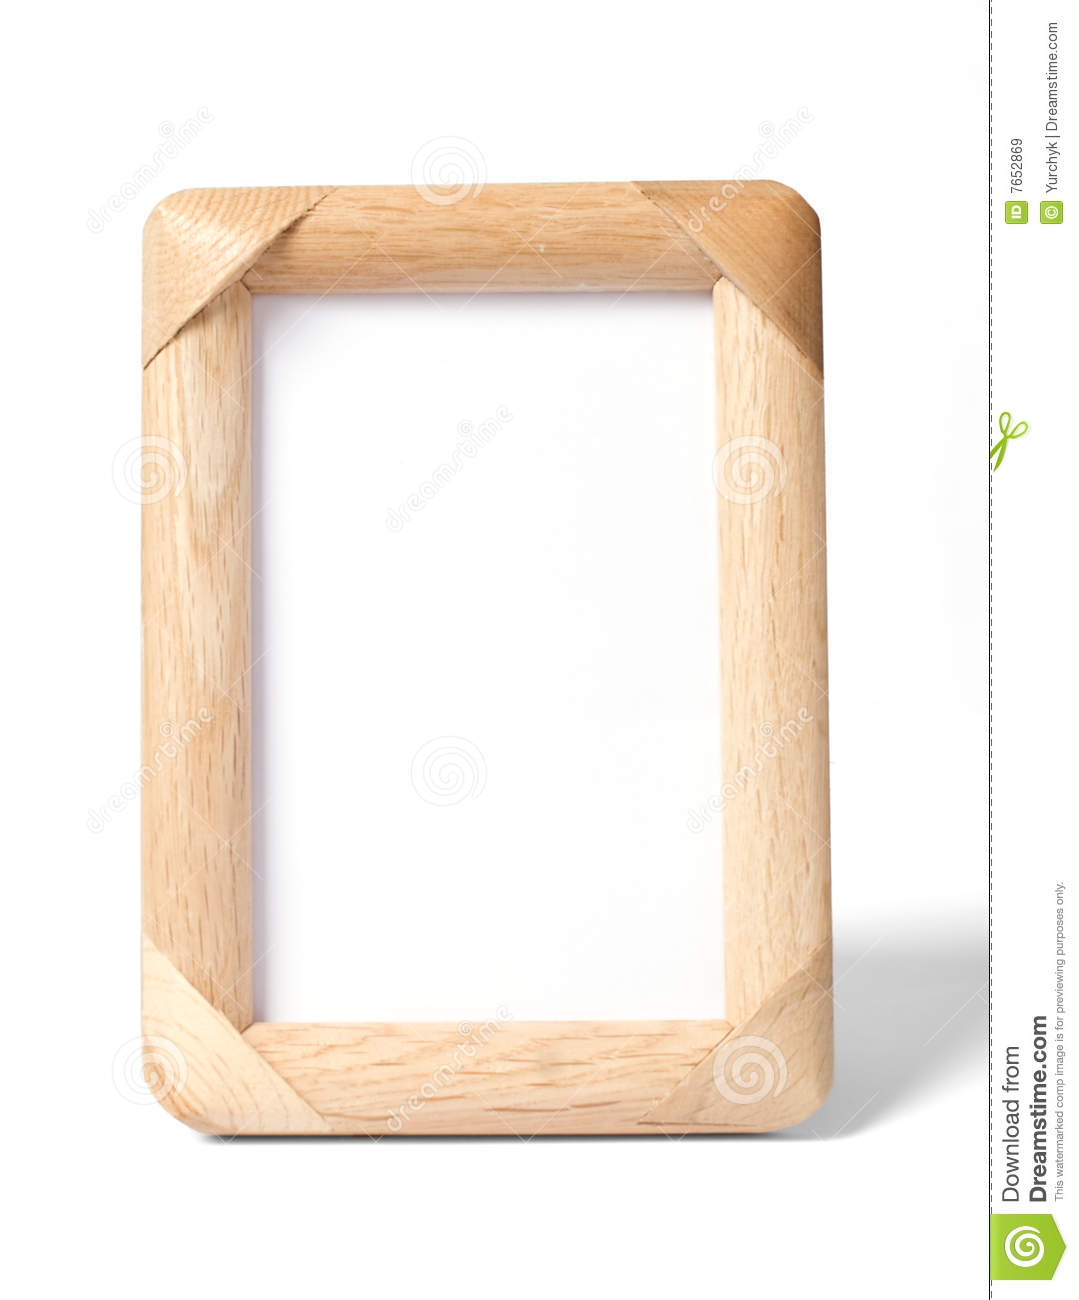 Simple Wooden Photo Frame Royalty Free Stock Images - Image: 7652869